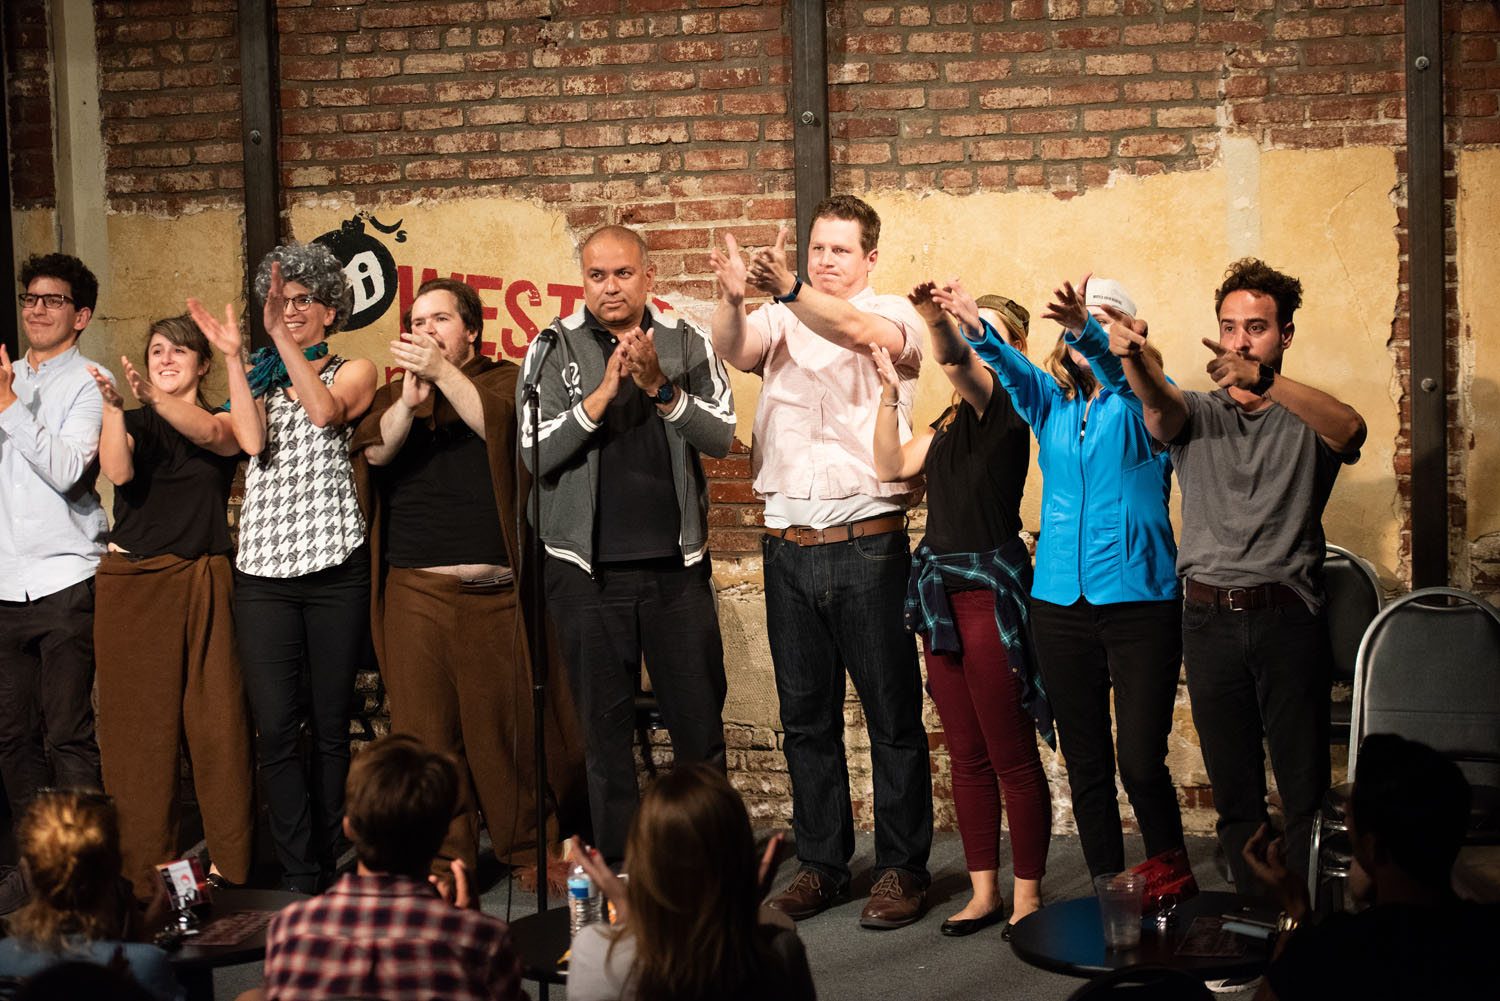 The cast takes a bow